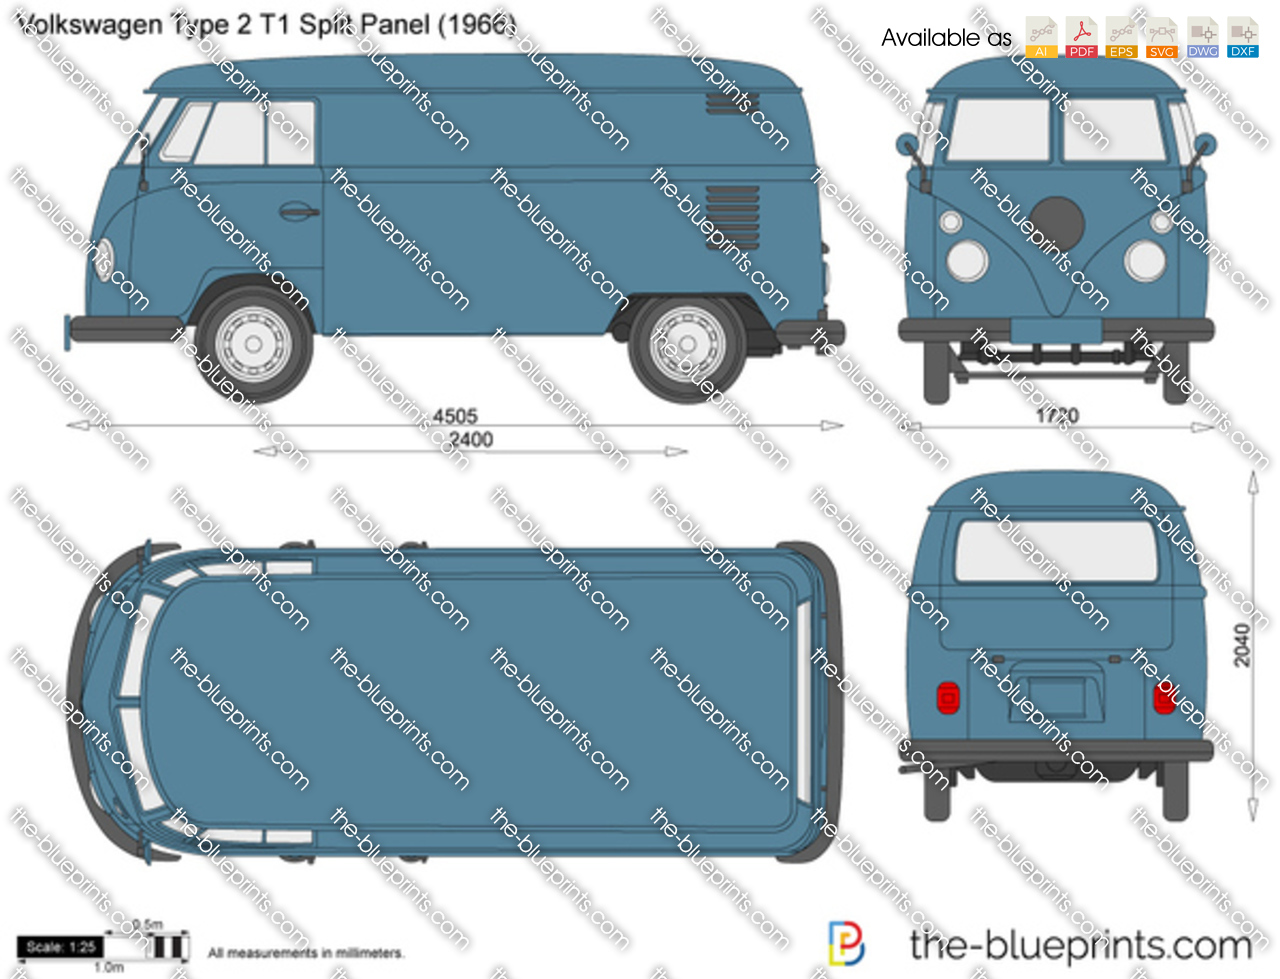 Volkswagen Type 2 T1 Split Panel